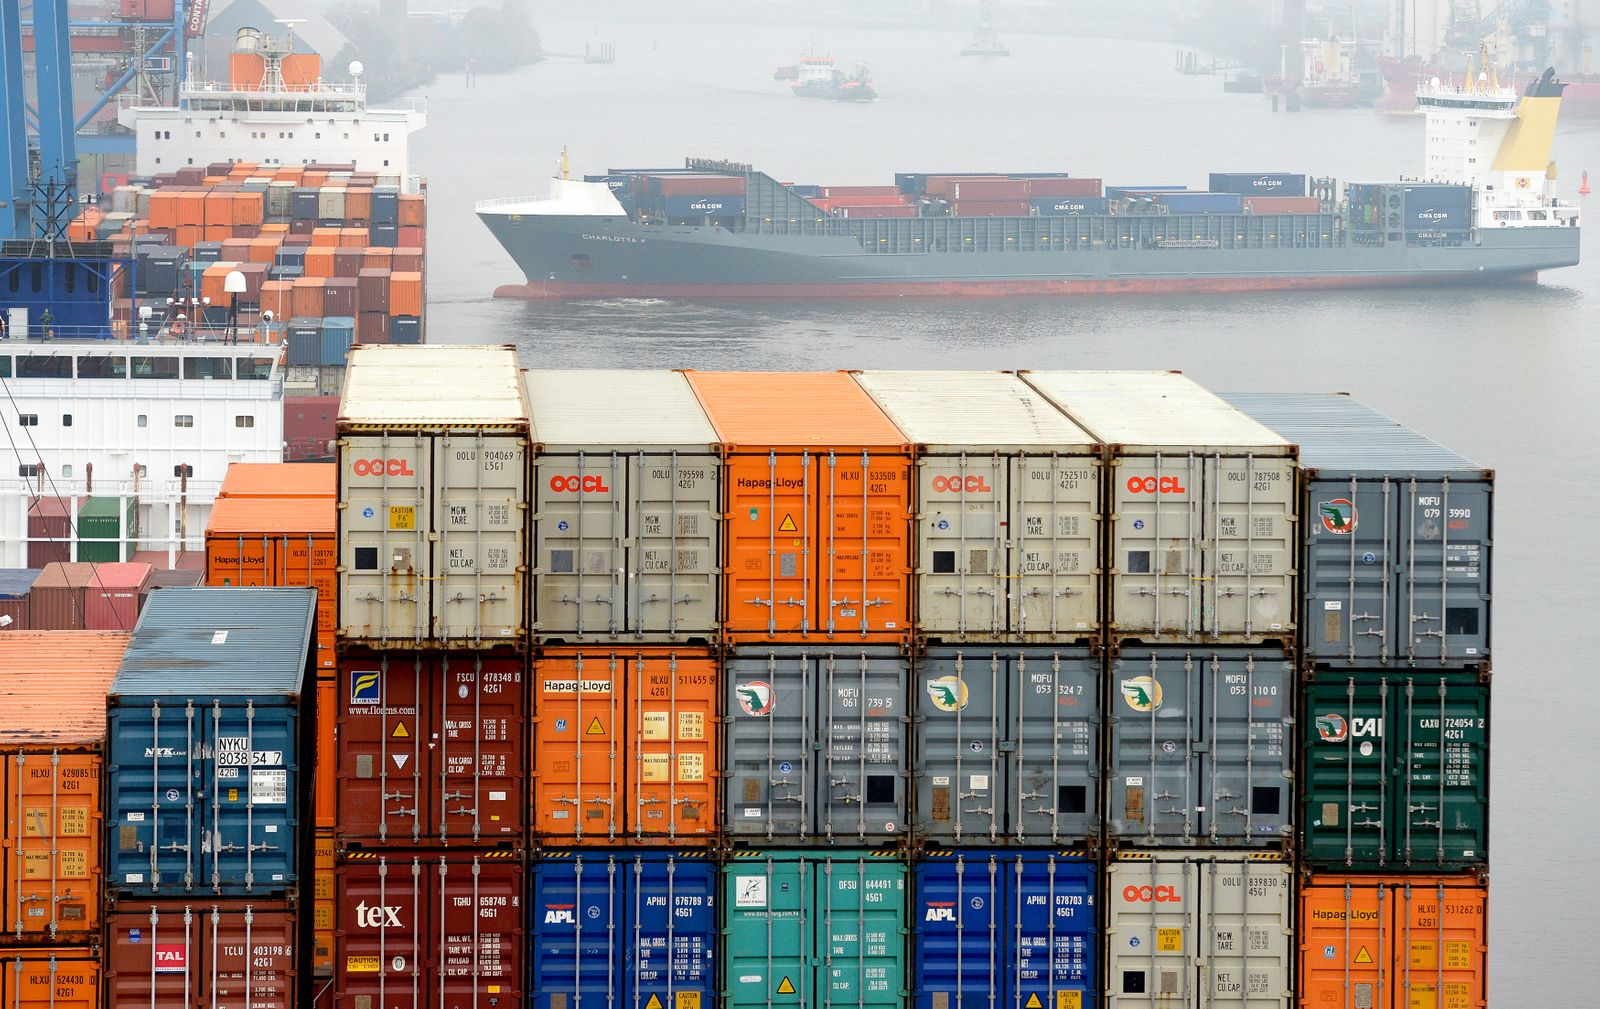 Containers are loaded at the container terminal Altenwerder in the harbour in Hamburg